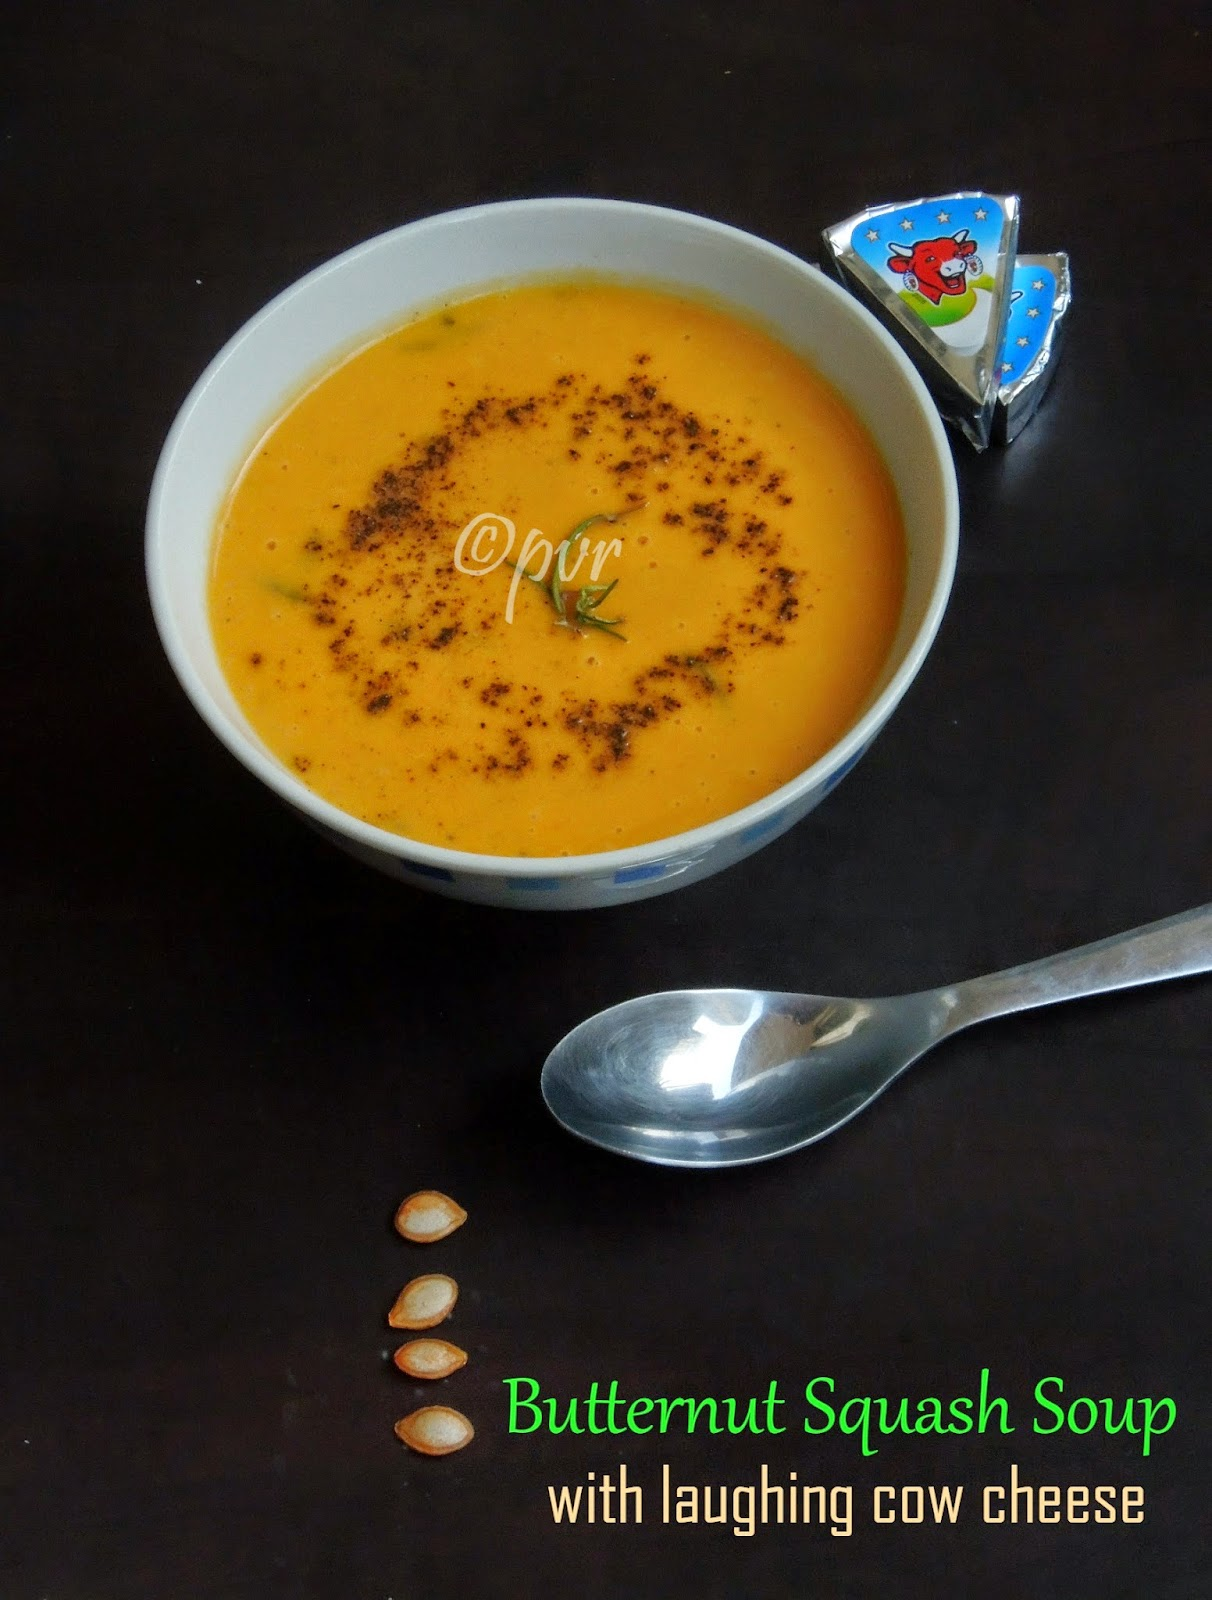 Cheesy Butternut squash soup